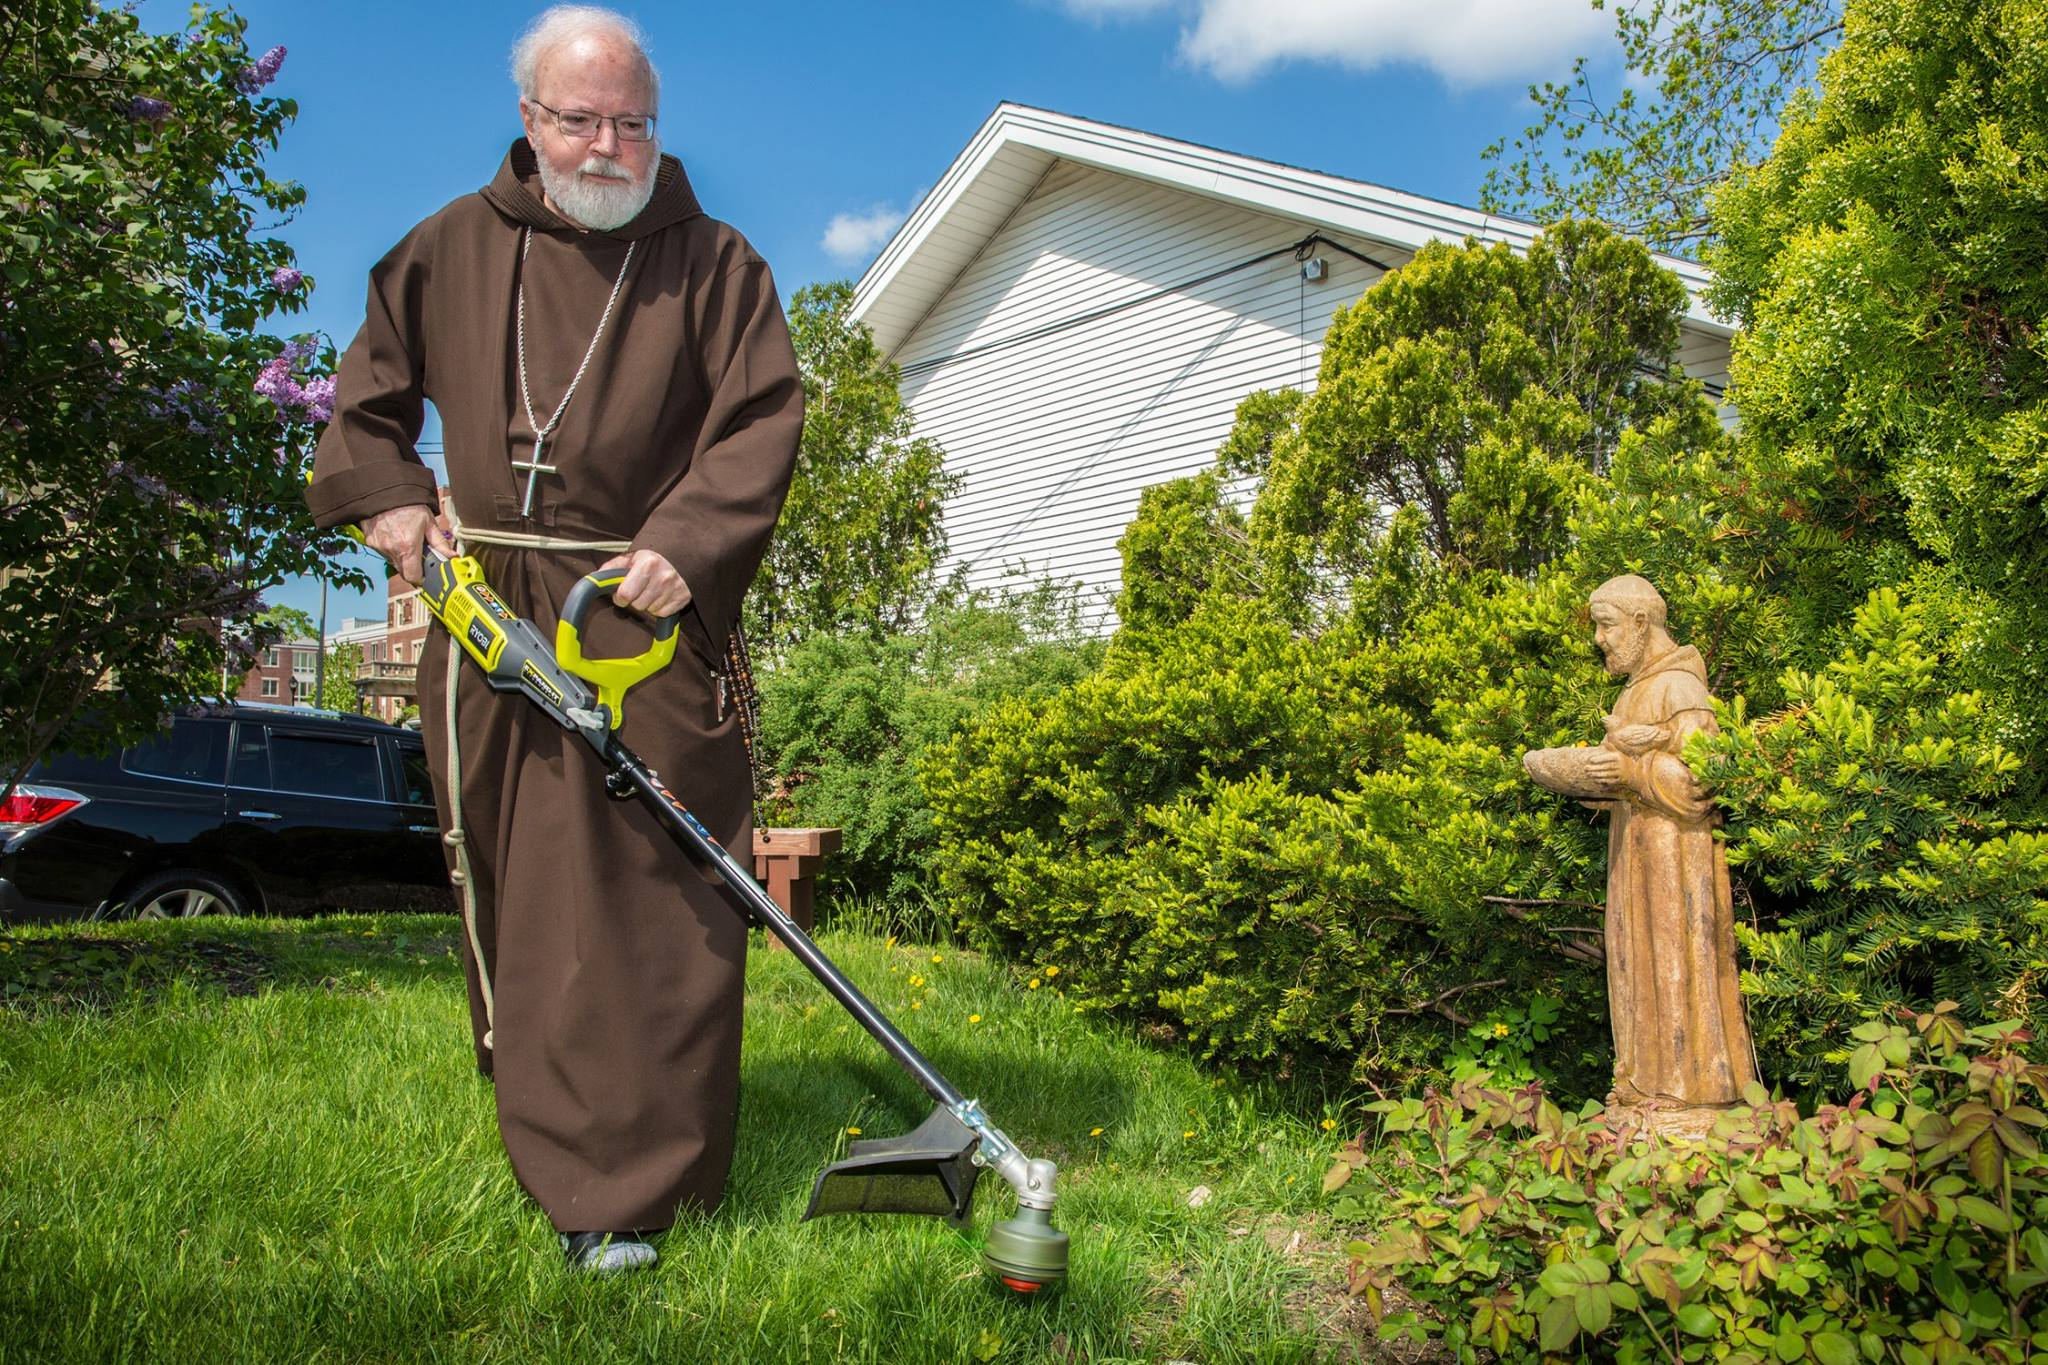 Cardinal Seán O'Malley helps out with the weed-whacking on the grounds of St. Mary of the Angels in Roxbury Monday morning as members of the Pastoral Center volunteer to refresh the grounds of several Boston area churches. Photo courtesy of George Martell/Archdiocese of Boston